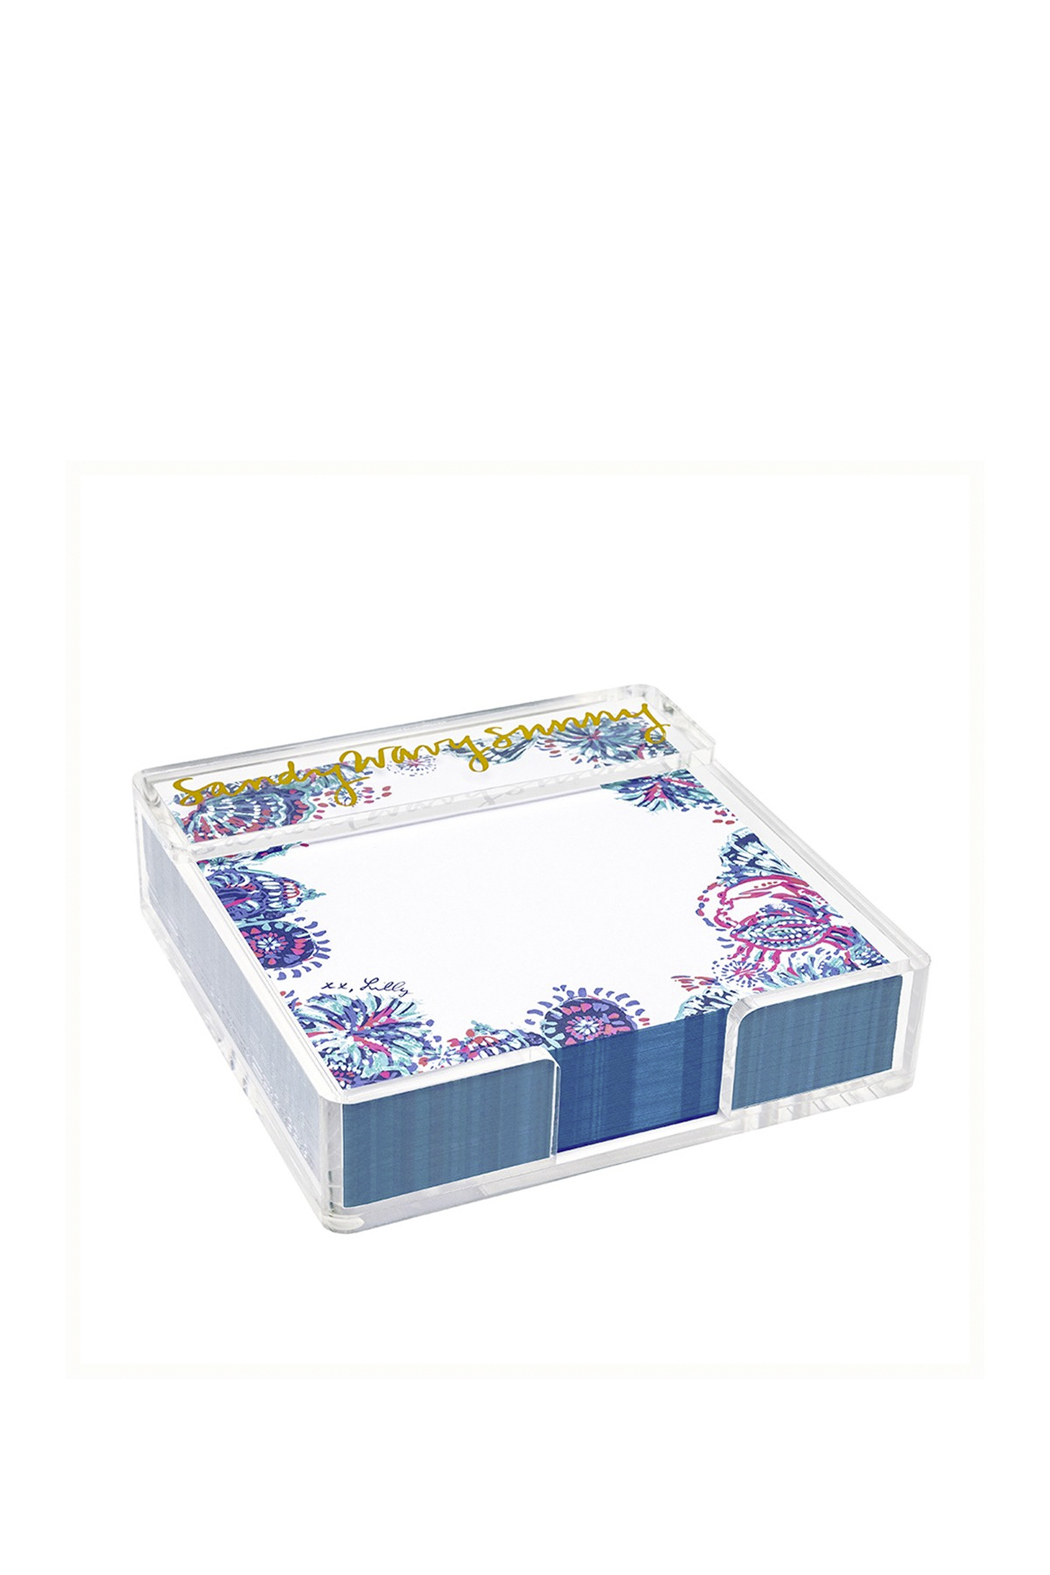 Lilly Pulitzer  Notepad with Acrylic Holder - Small - Main Image